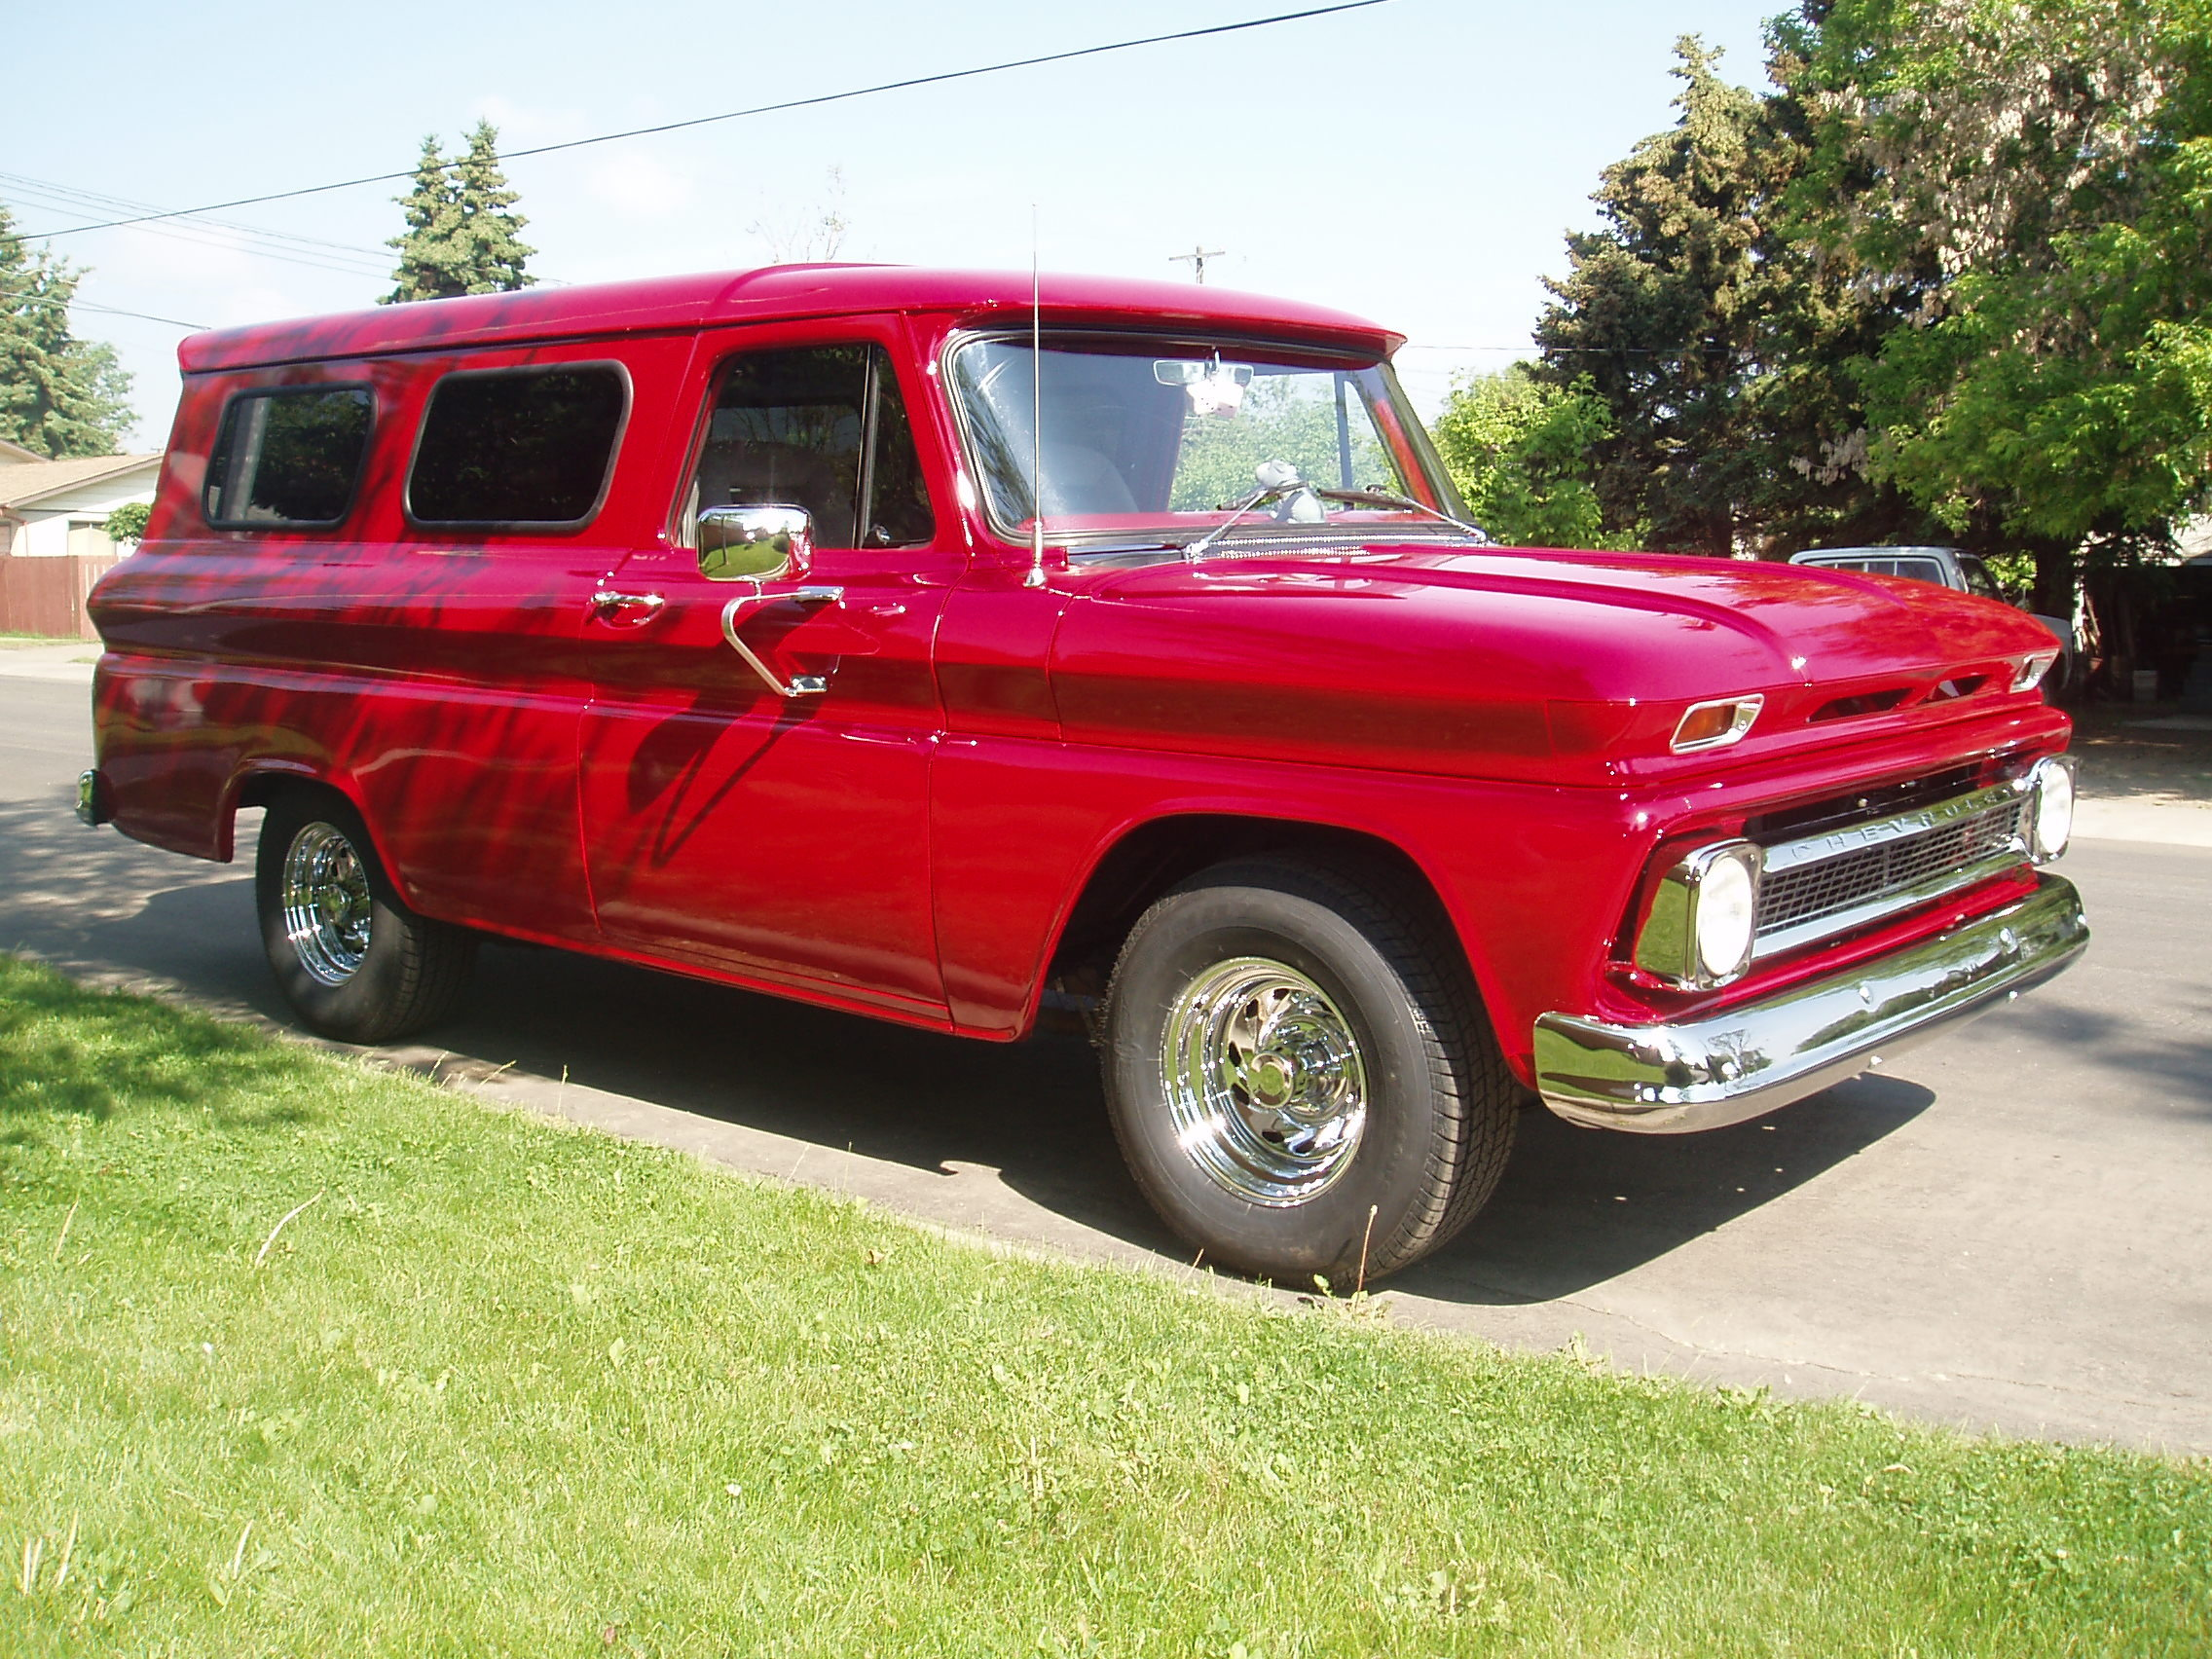 Quaid540's 1964 Chevrolet Panel Van